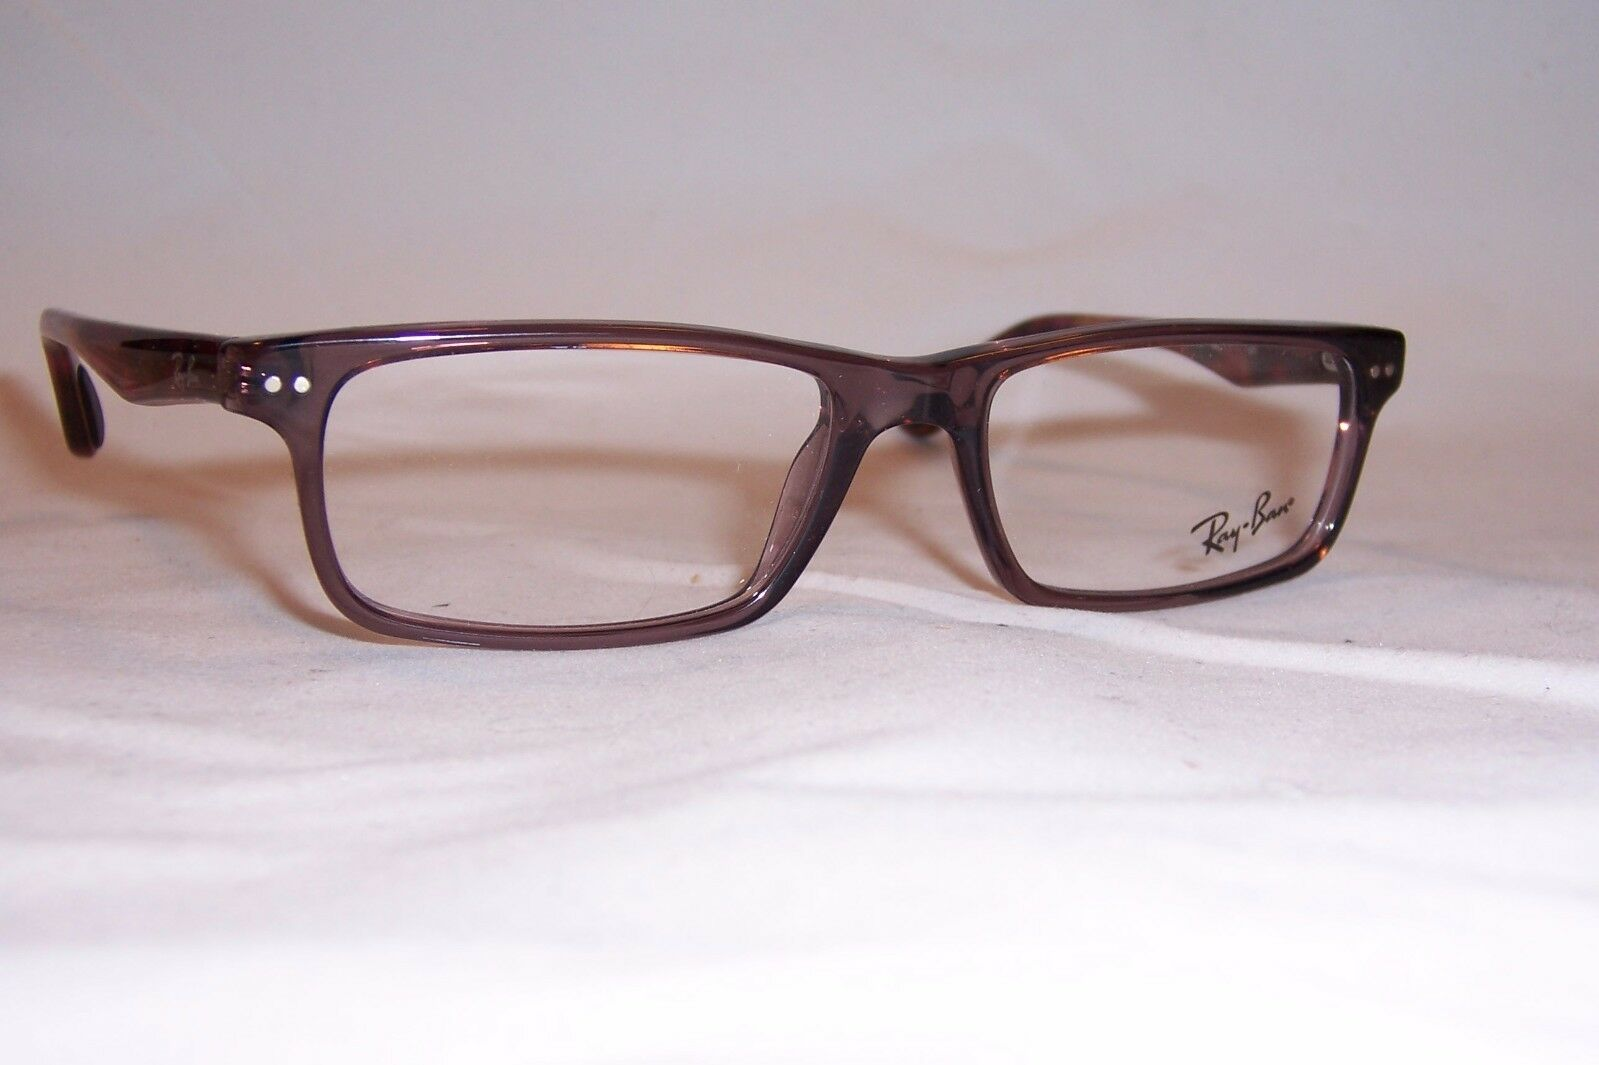 3fa230030773 Ray-Ban 0rx5277 Rectangle Unisex Eyeglasses Shiny Opal Brown 52 for ...